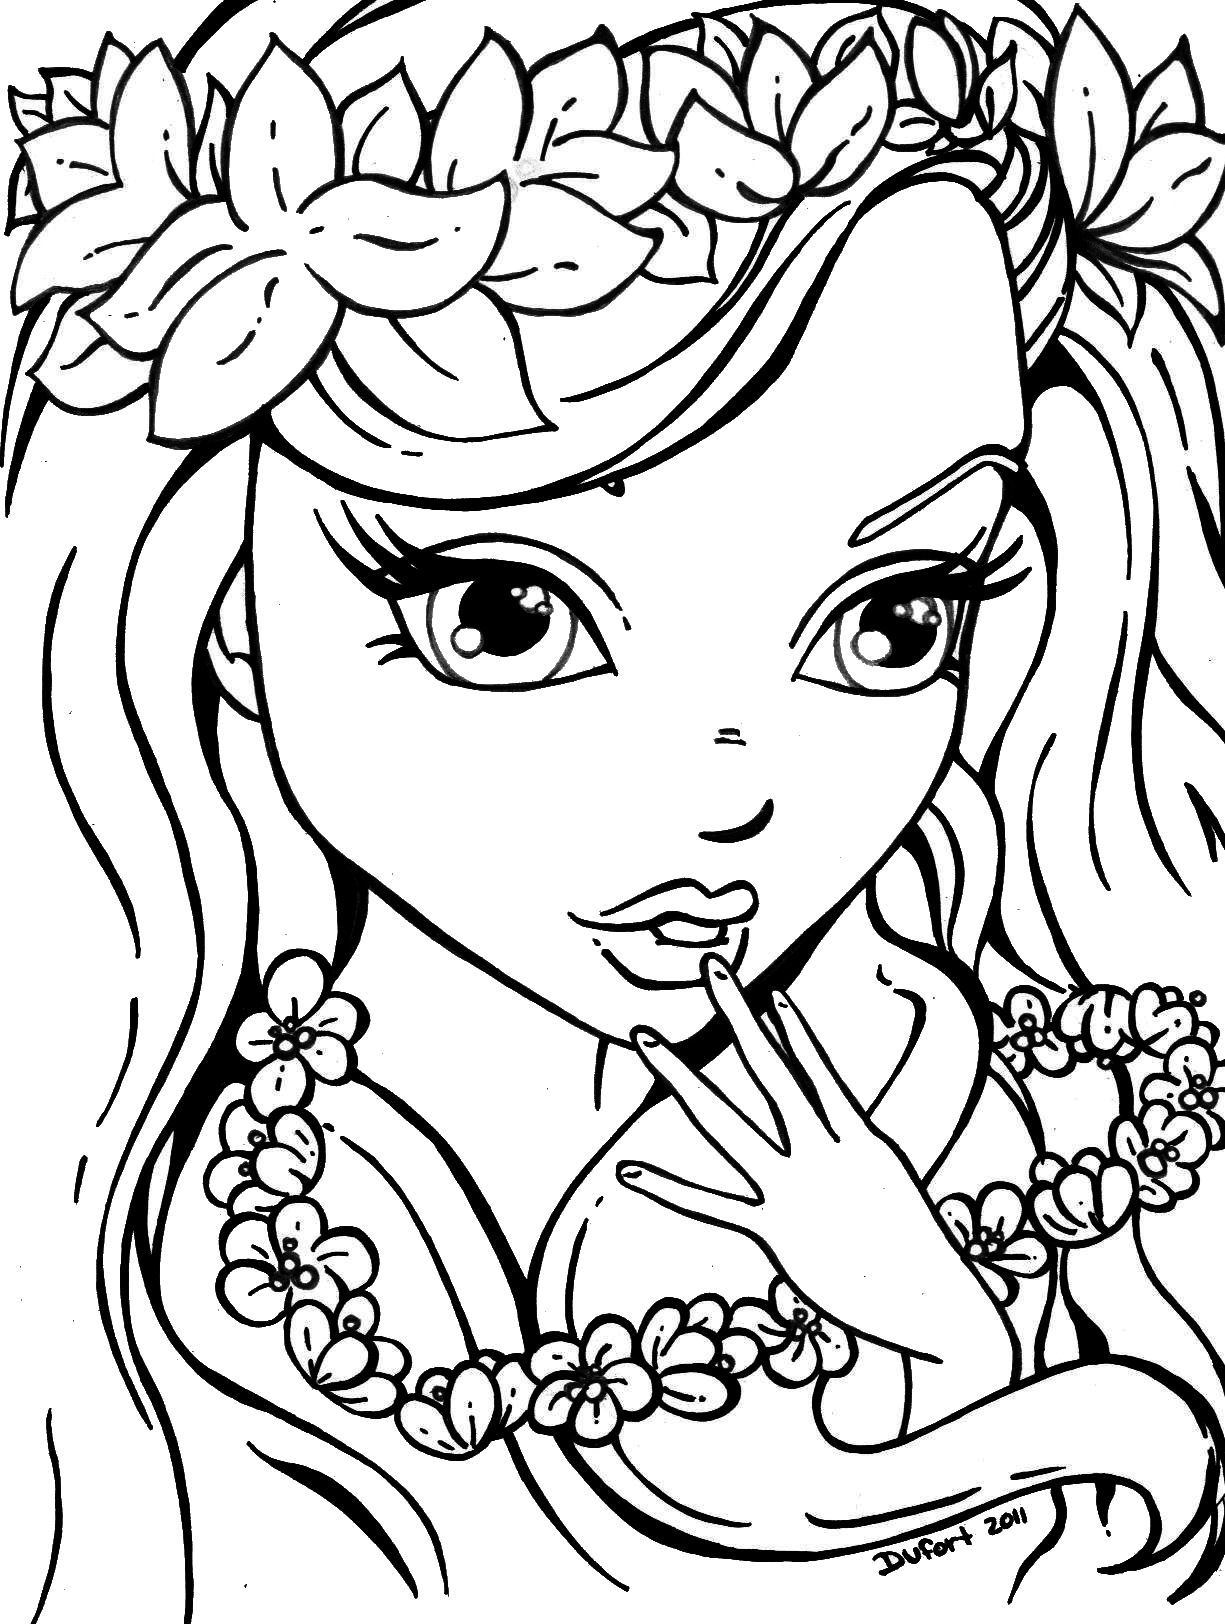 1225x1624 Lavishly Movie Star Planet Coloring Pages Chib